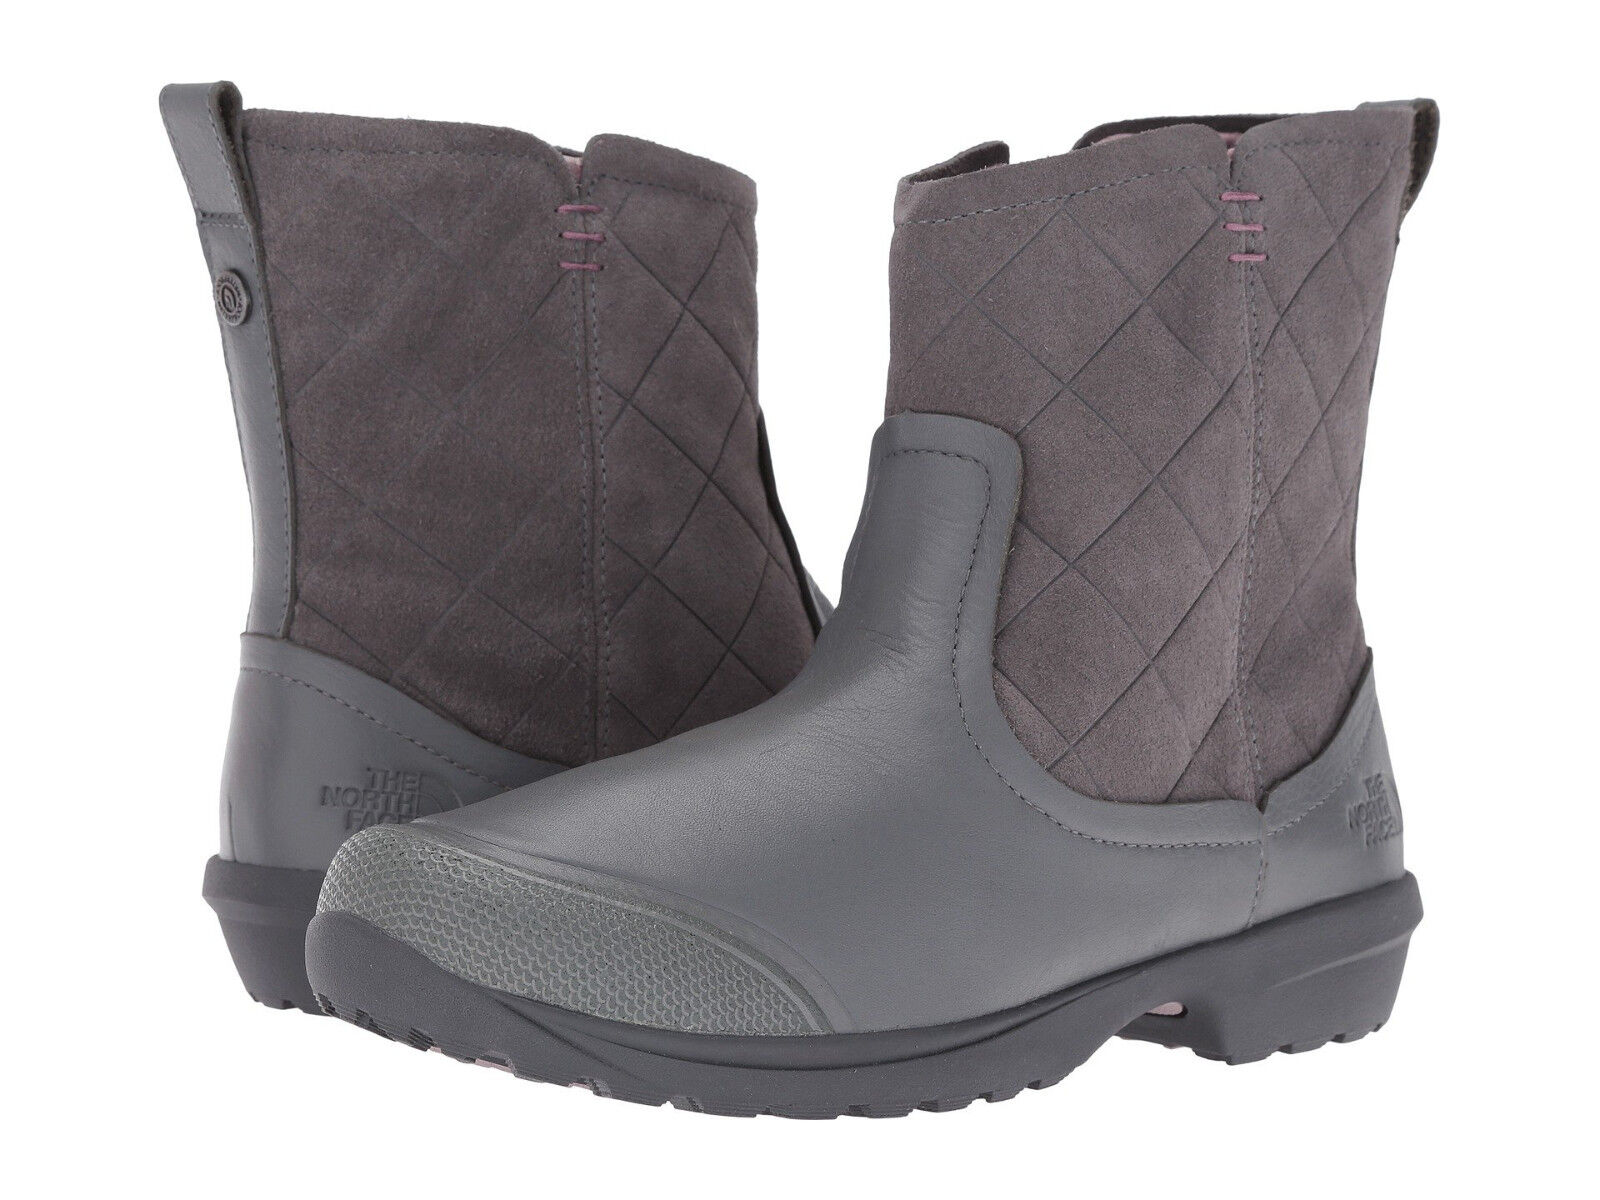 The North Face Grau Thermoball Metro Shorty Leder Waterproof Stiefel Gre 8 NEU